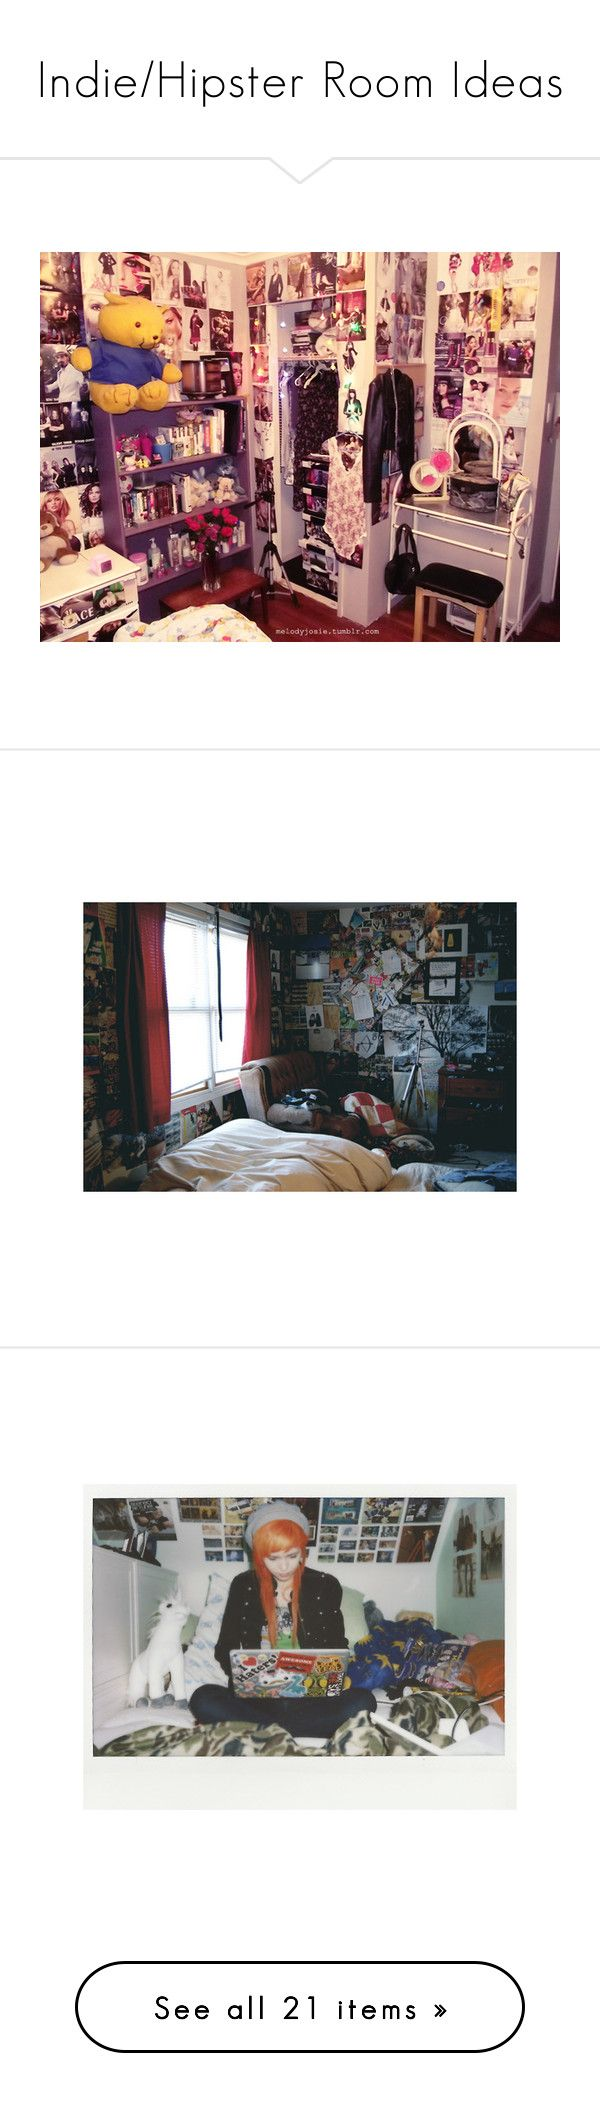 17 best ideas about indie hipster room on pinterest Indie room decorations